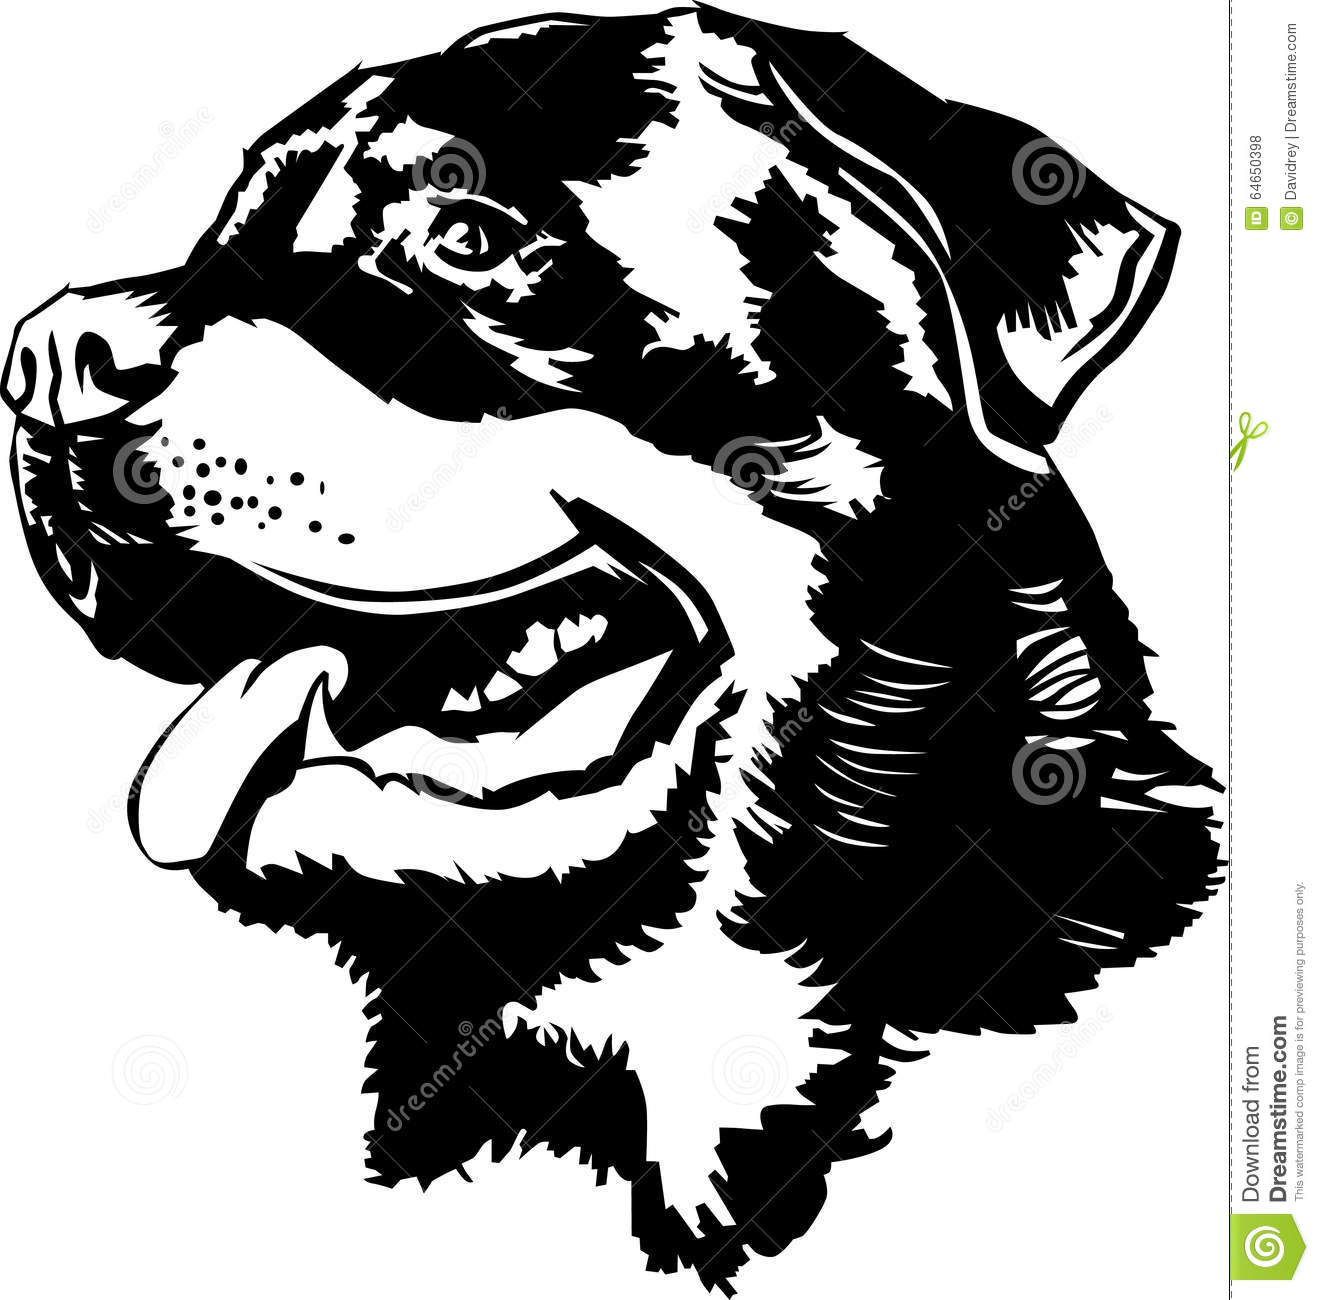 Rottweiler clipart #10, Download drawings